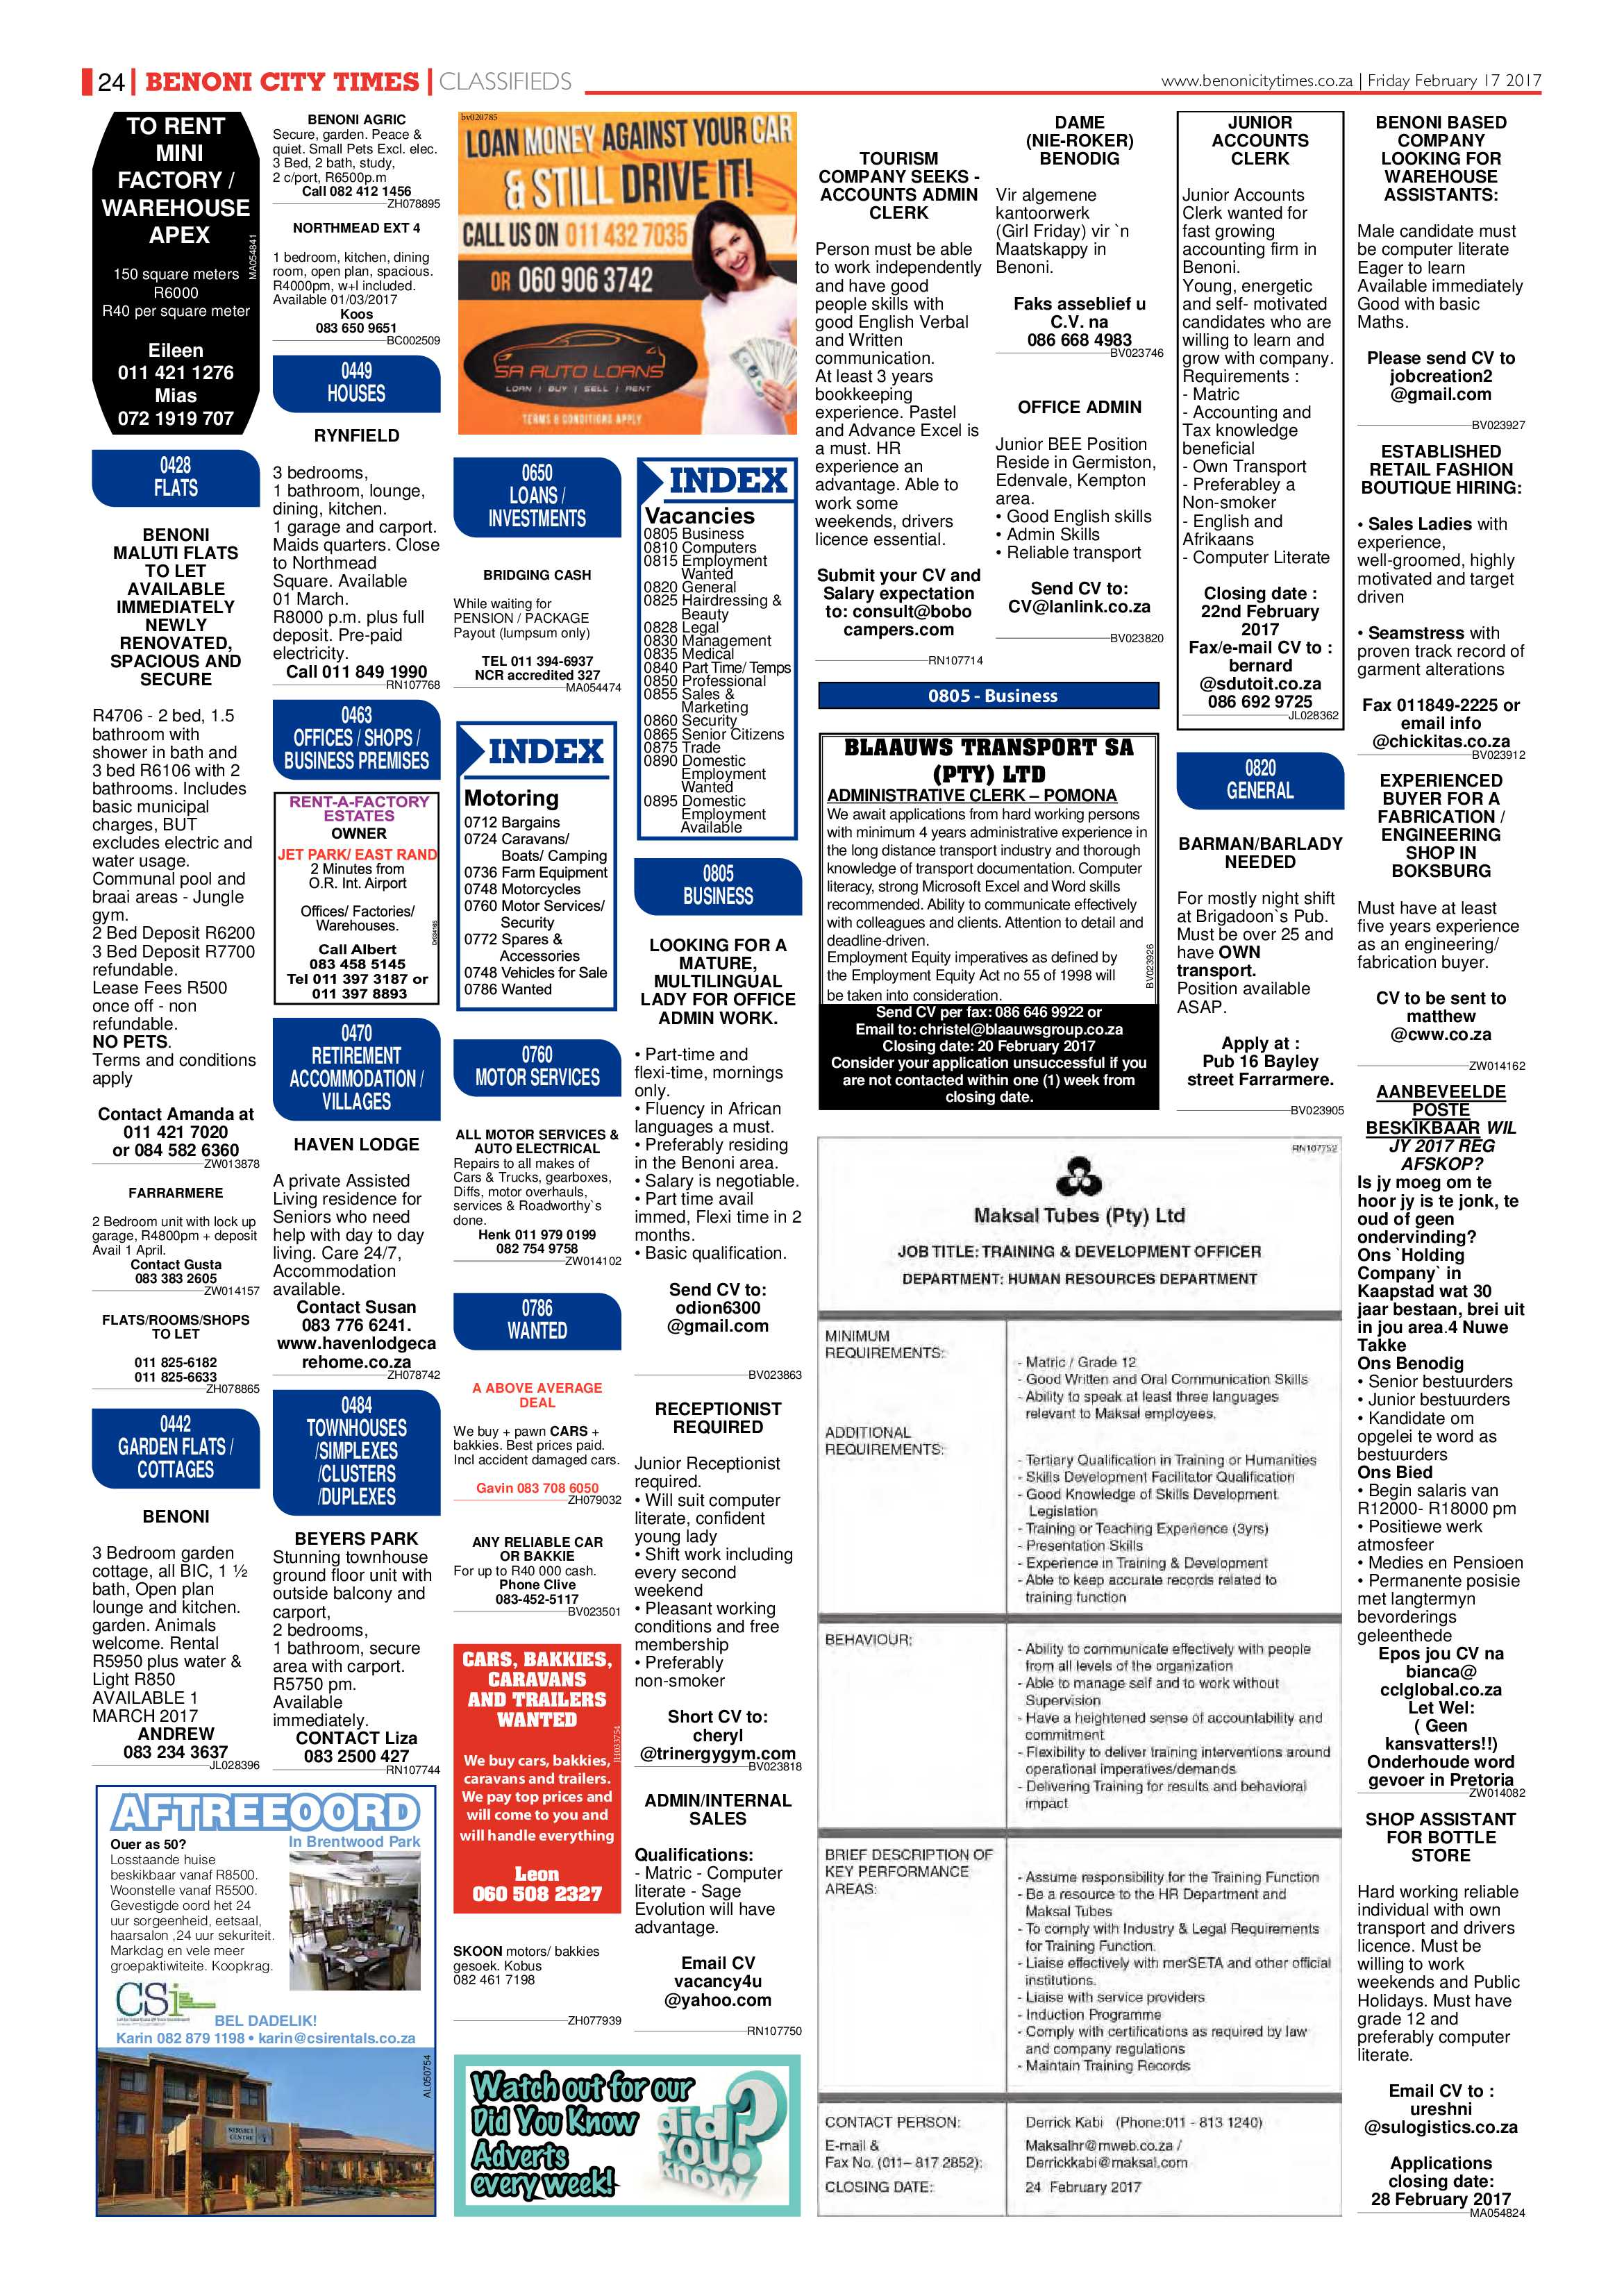 benoni-city-times-16-february-2017-epapers-page-24